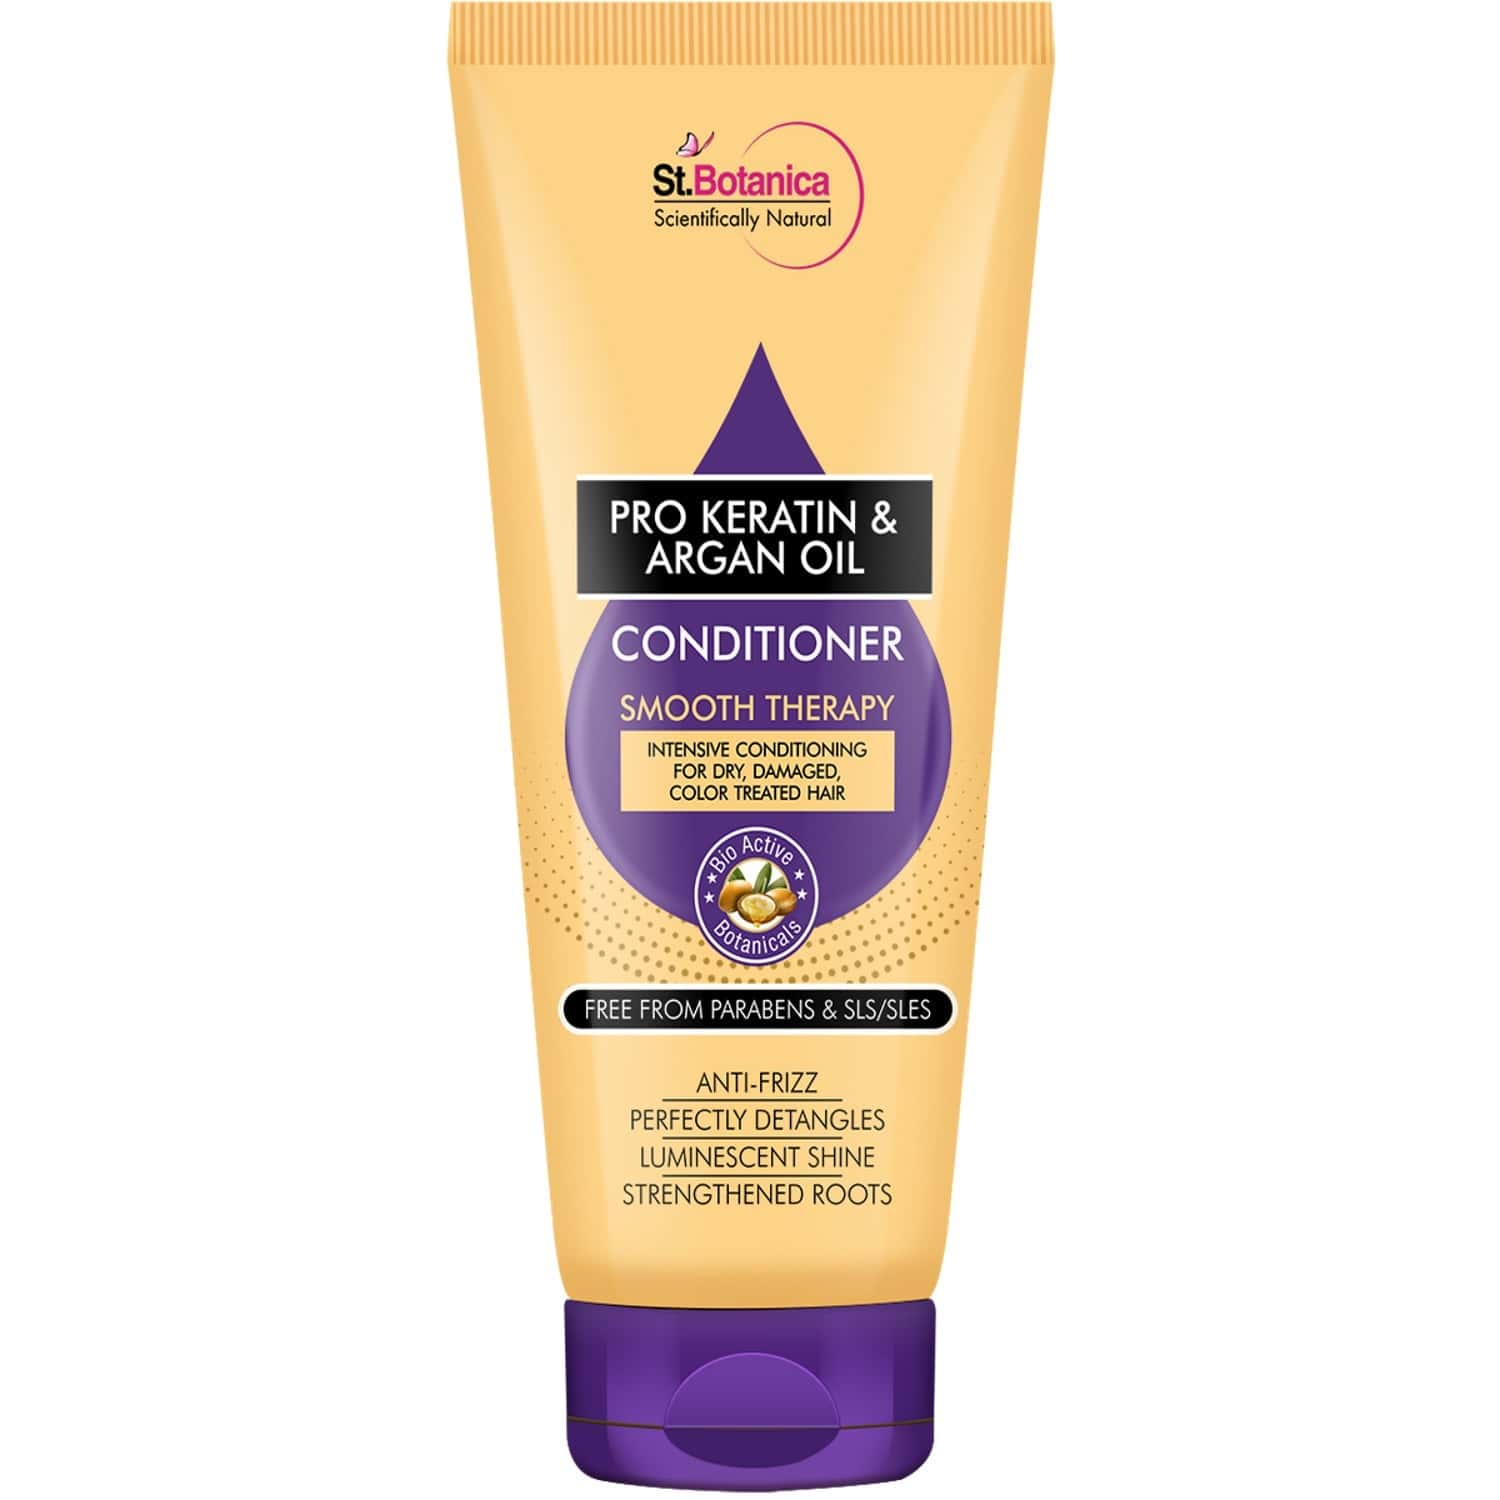 Stbotanica Pro Keratin & Argan Oil Smooth Therapy Conditioner - 200 Ml - Intensive Conditioning For Dry, Damaged And Color Treated Hair, No Parabens Or Sls/sles